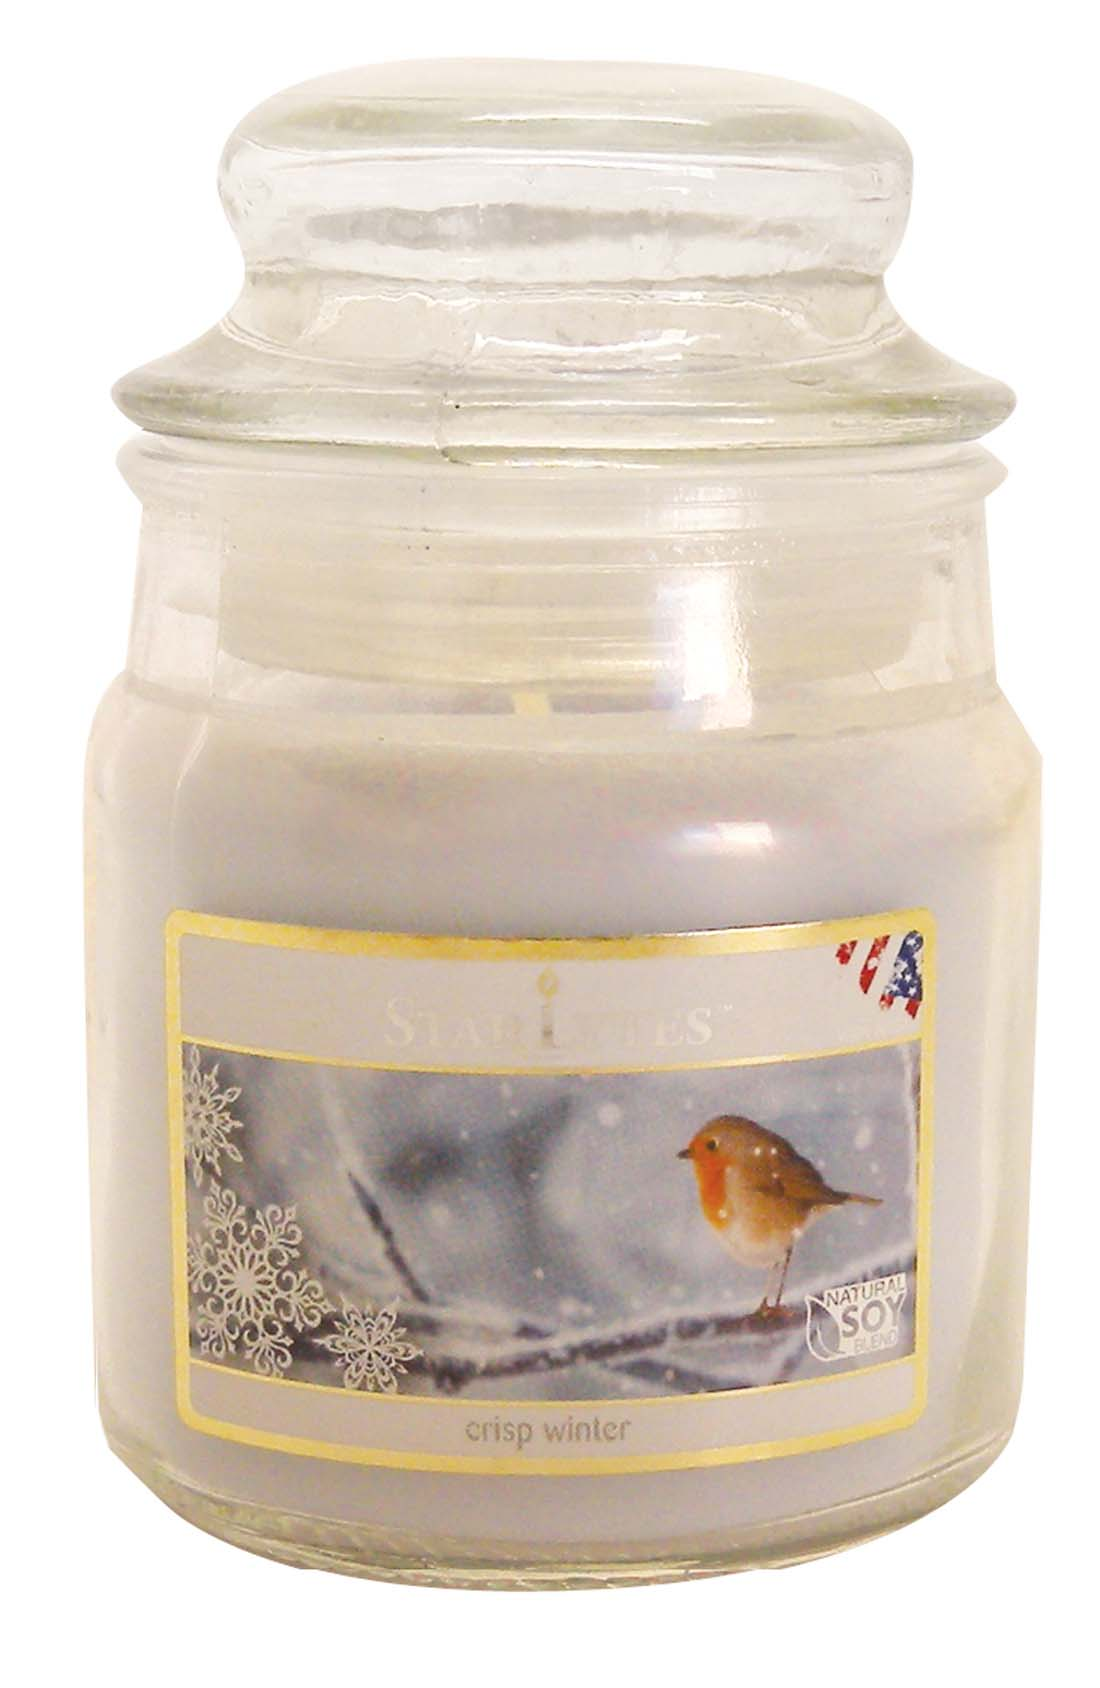 View CANDLE 3 OUNCE CRISP WINTER ** MADE IN USA **